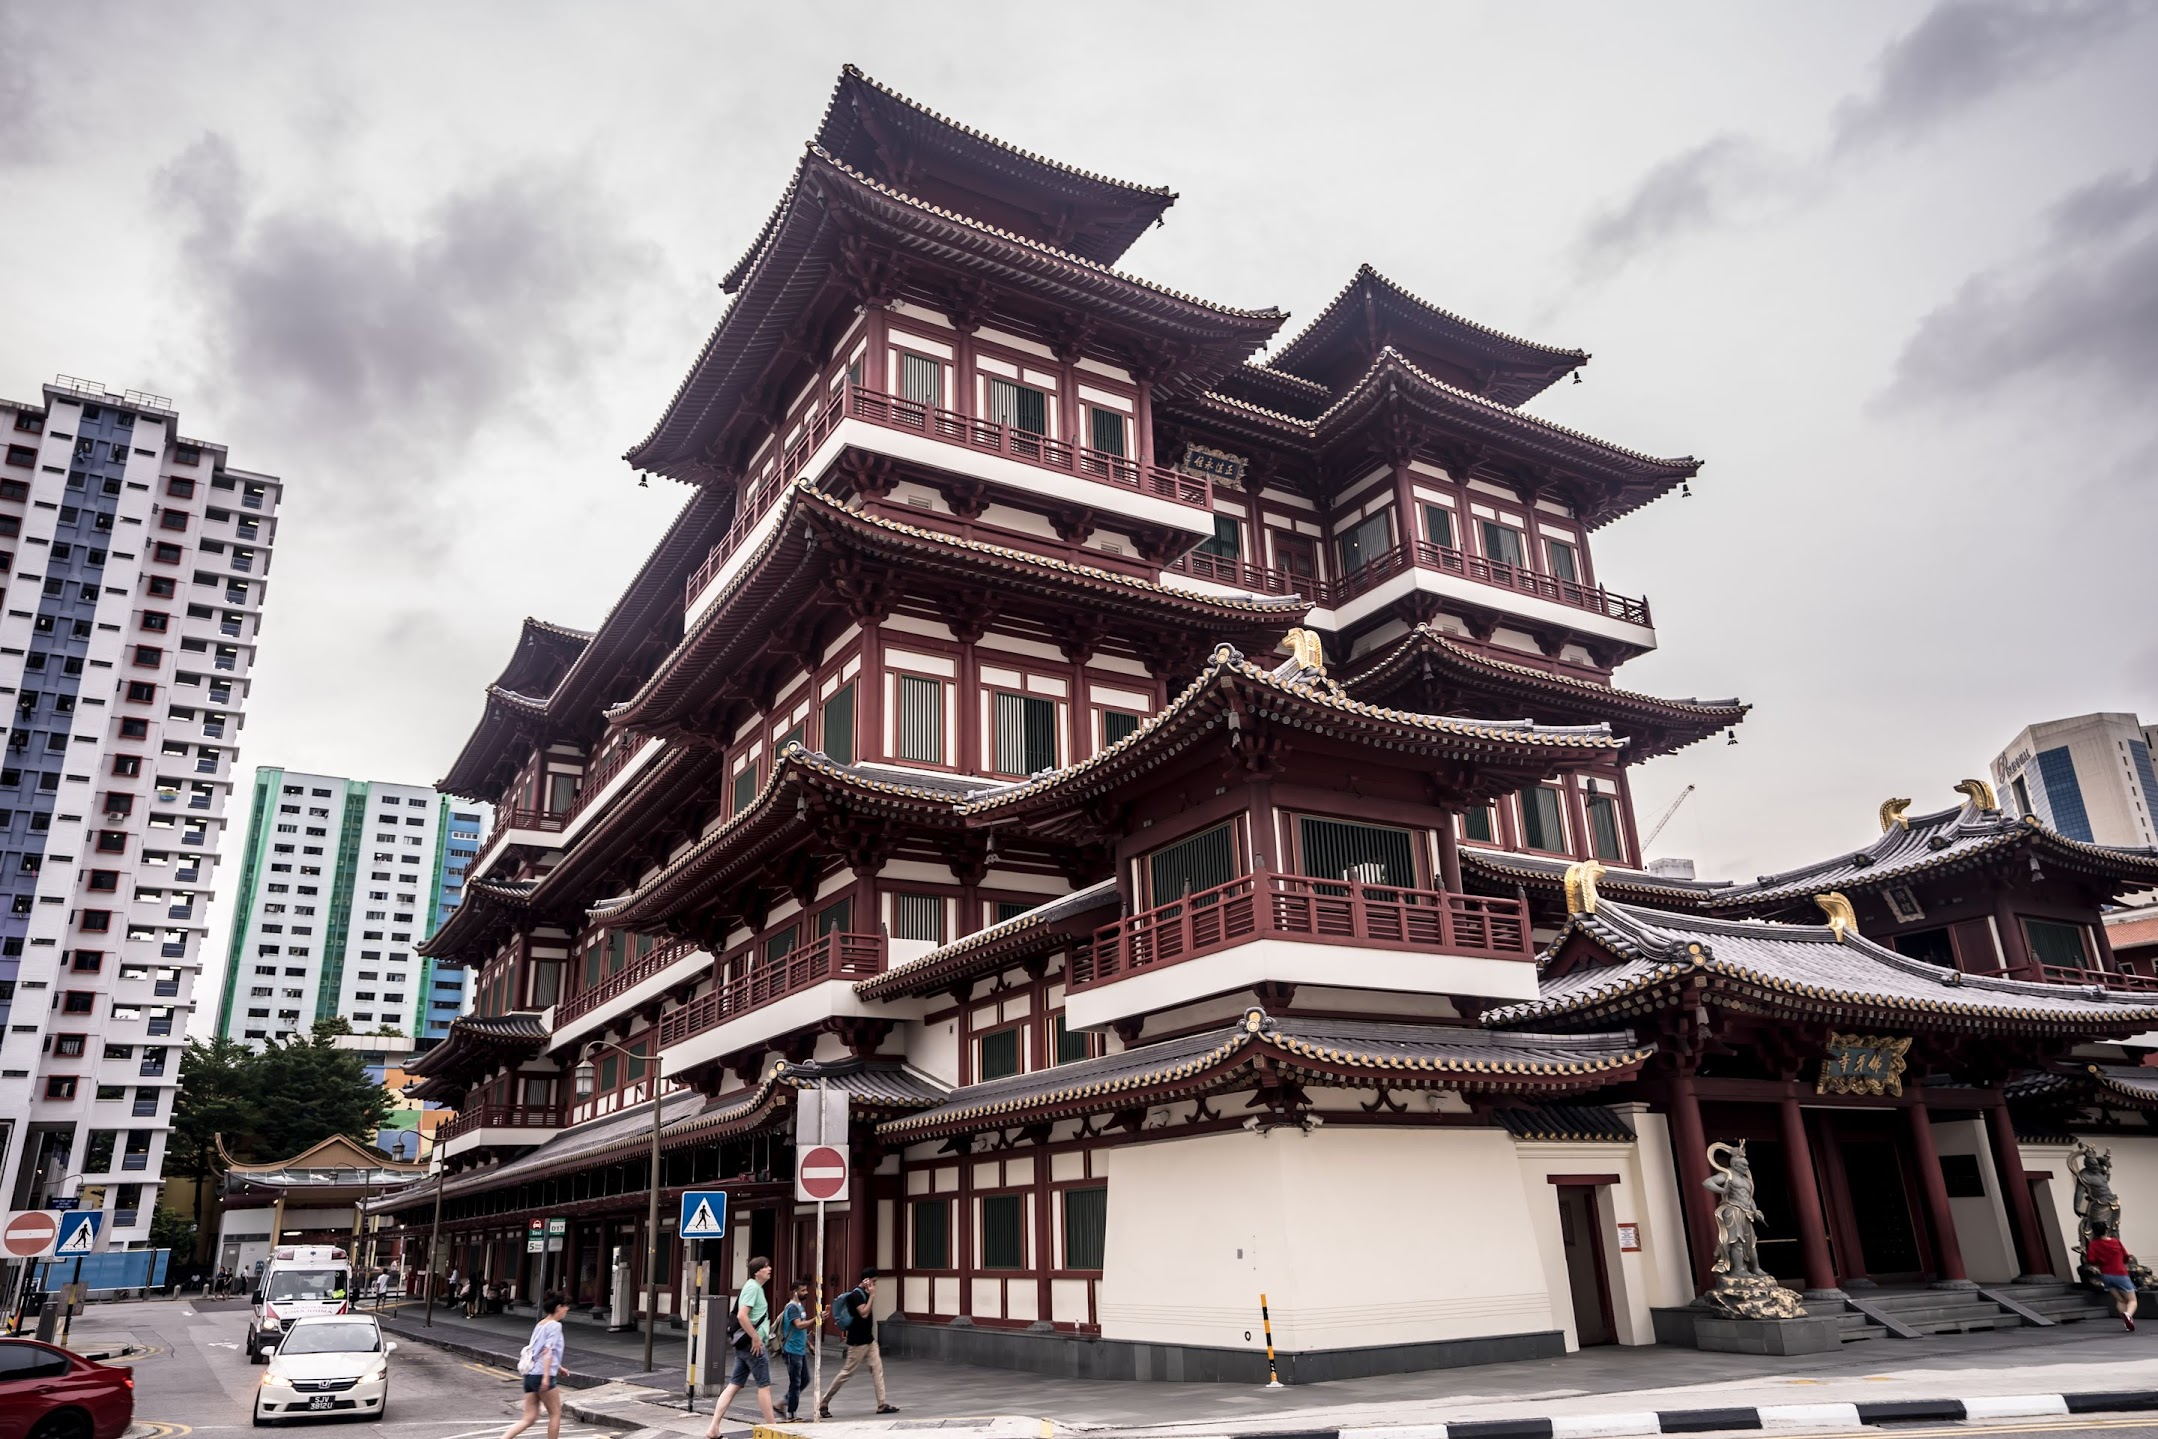 シンガポール チャイナタウン 新加坡佛牙寺龍牙院 (Buddha Tooth Relic Temple and MuseumBuddha Tooth Relic Temple and Museum)2